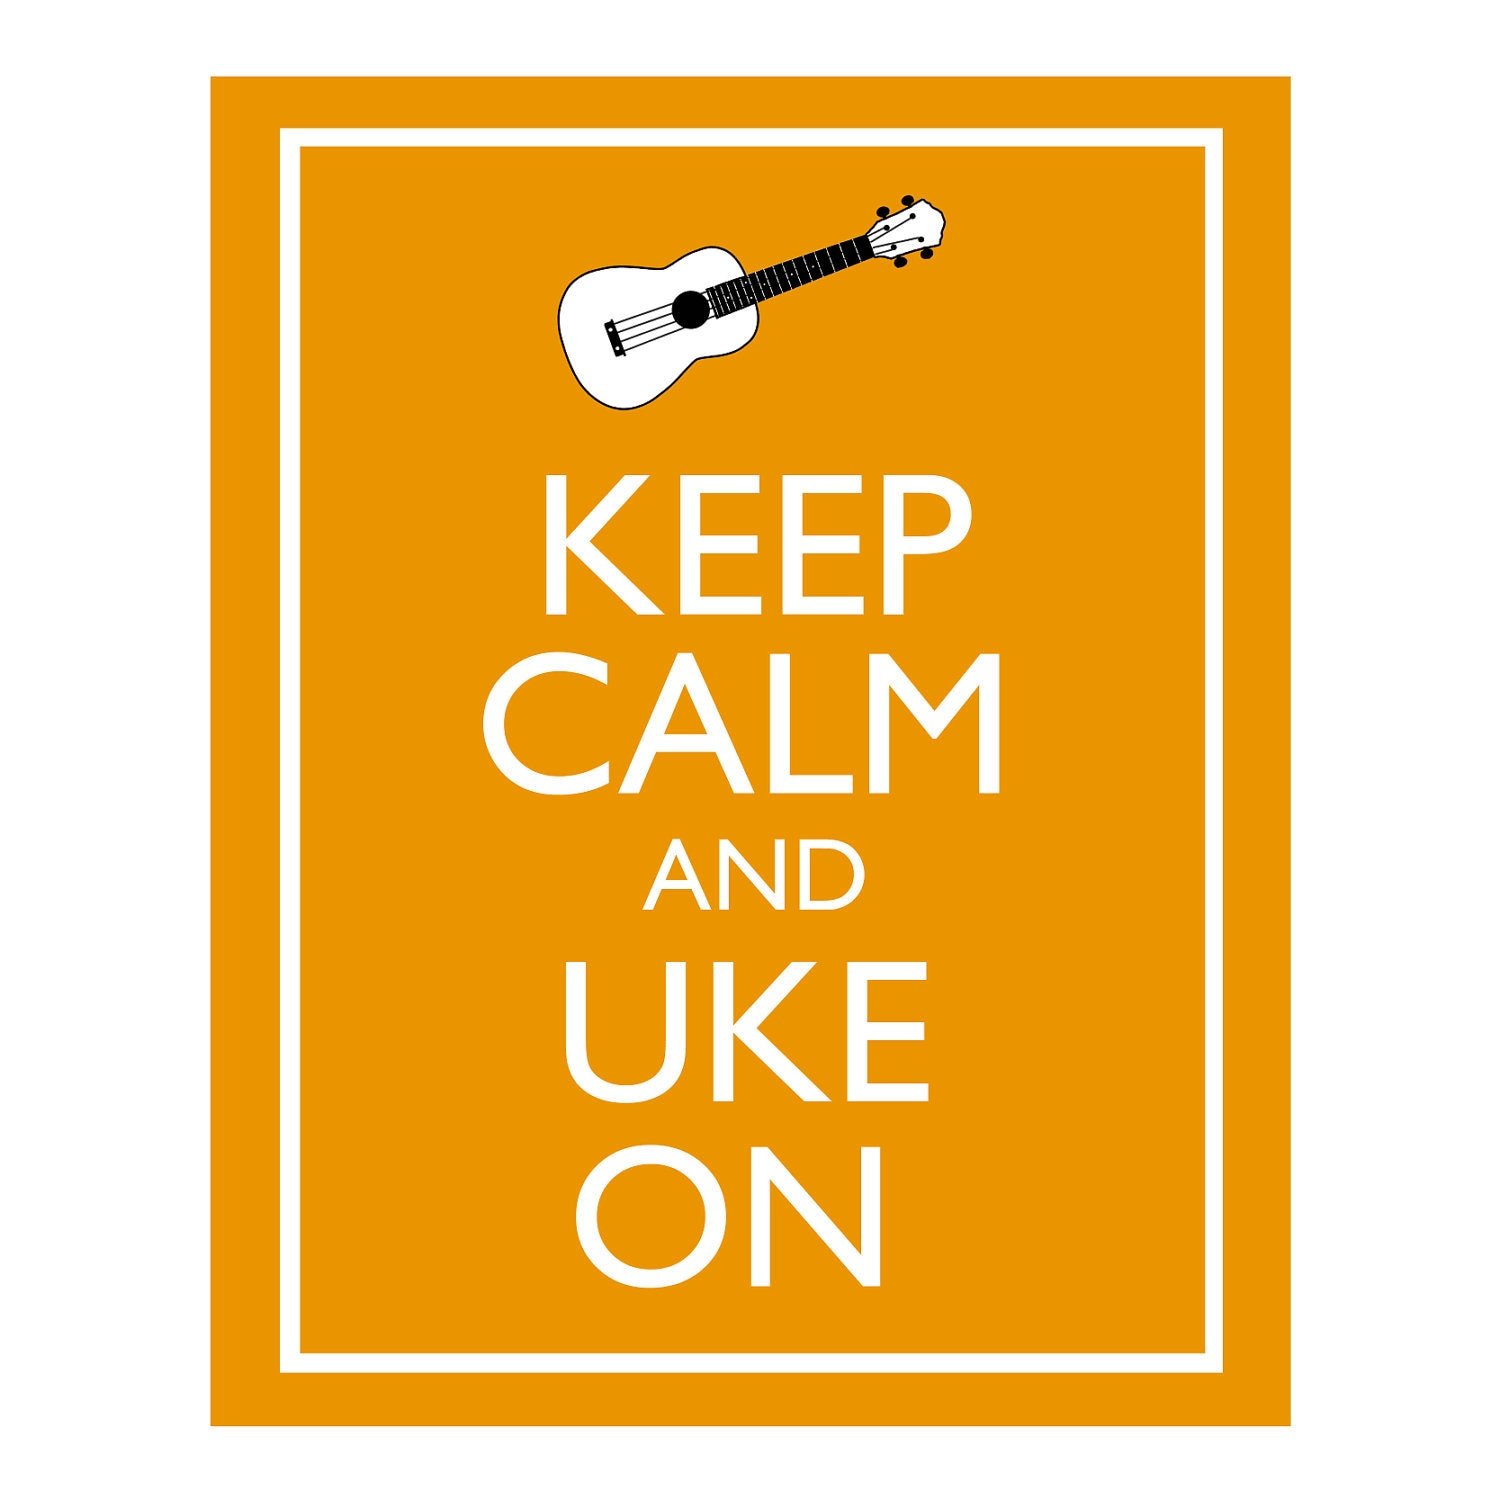 Keep Calm and Uke On Illustration 8x10 Ukulele Wall Art